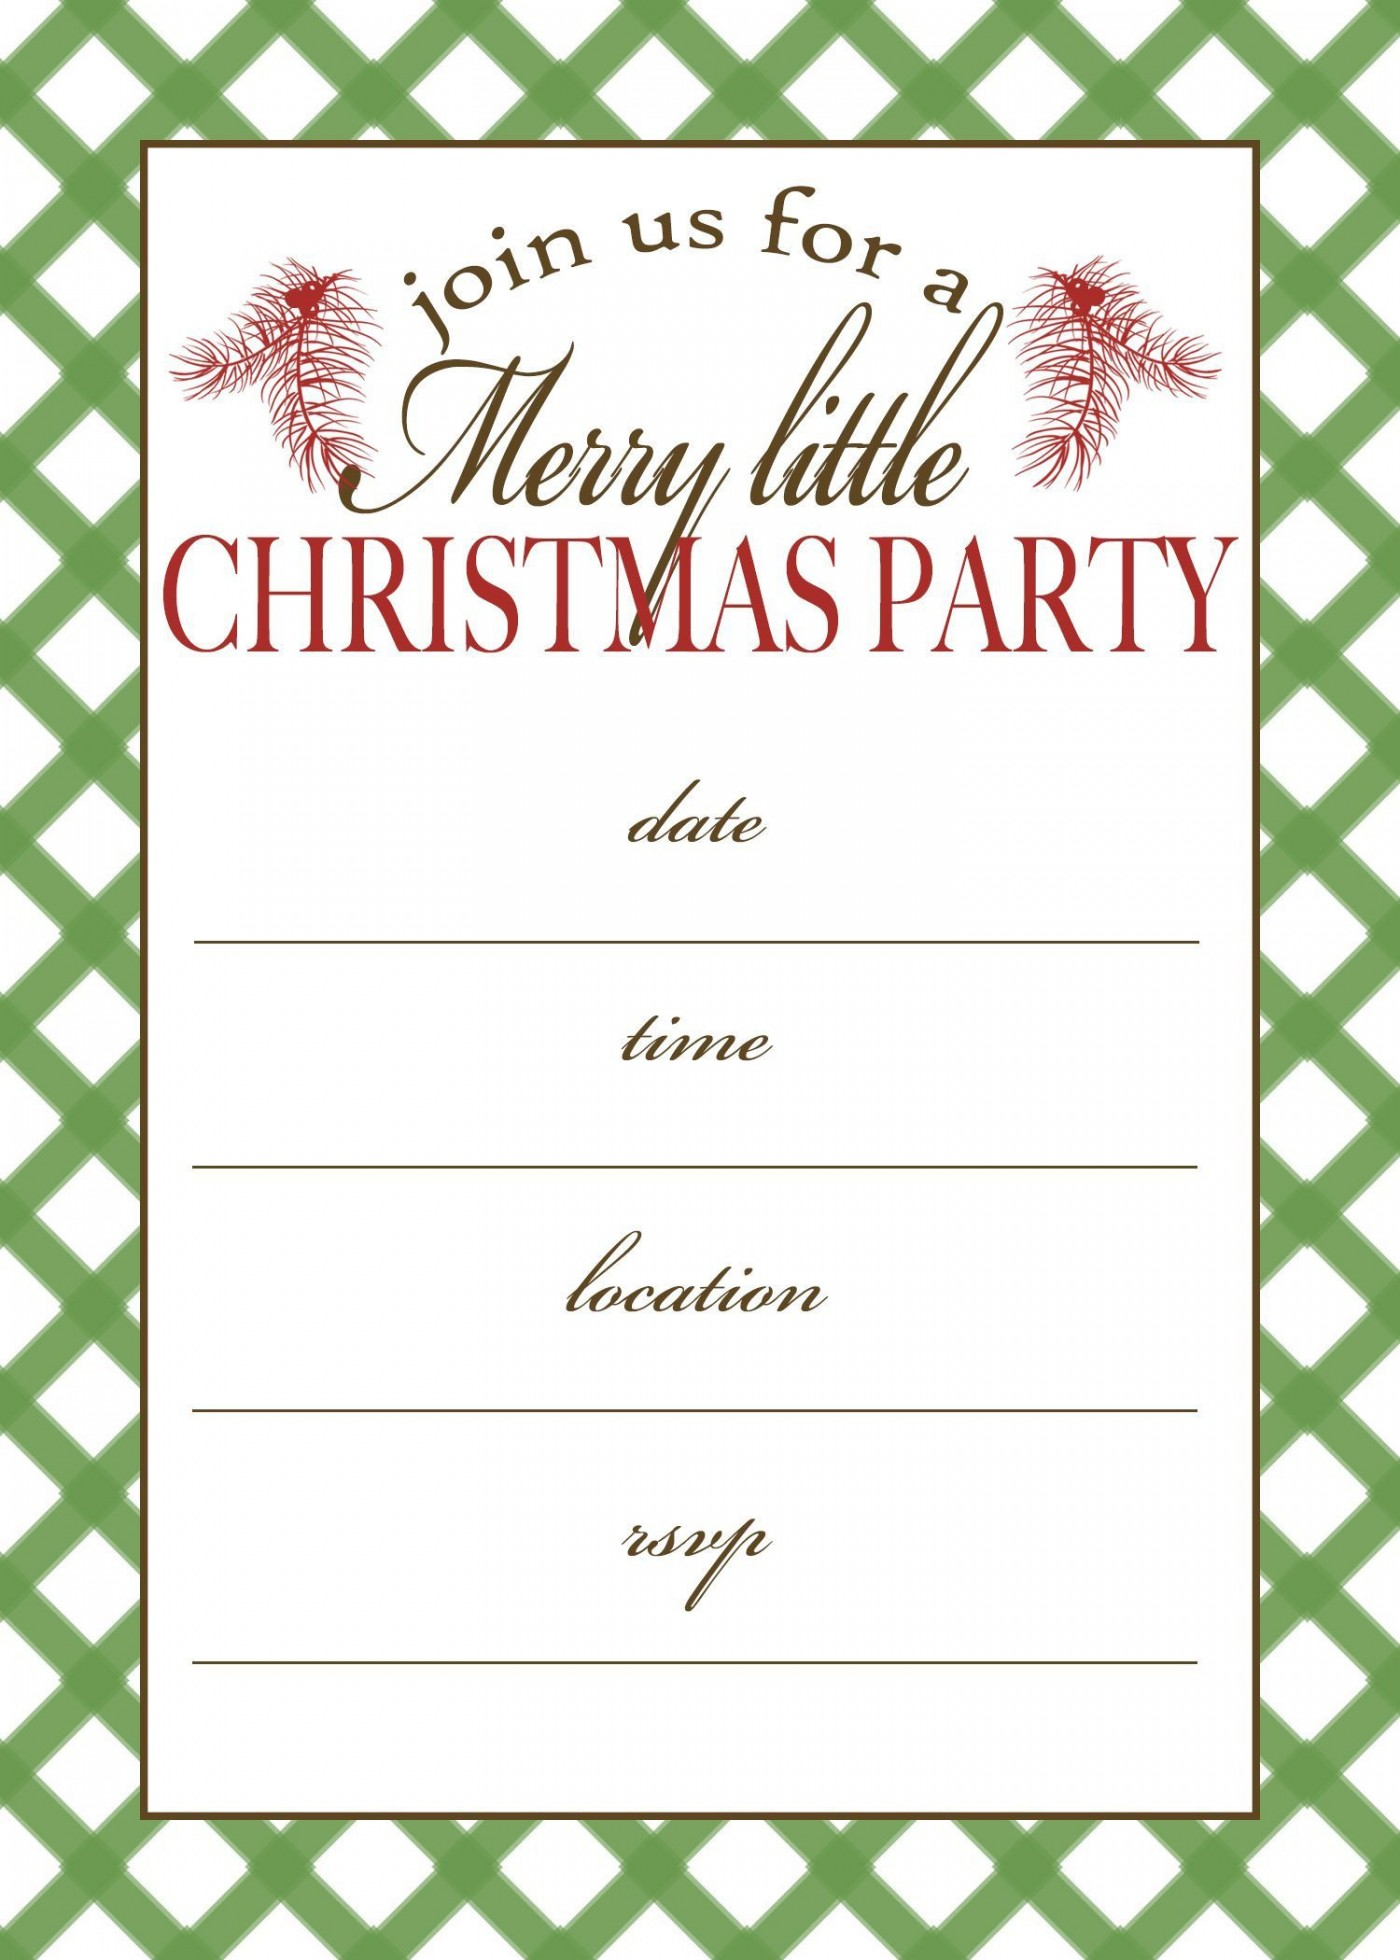 001 Incredible Christma Party Invitation Template Sample  Funny Free Download Word Card1400